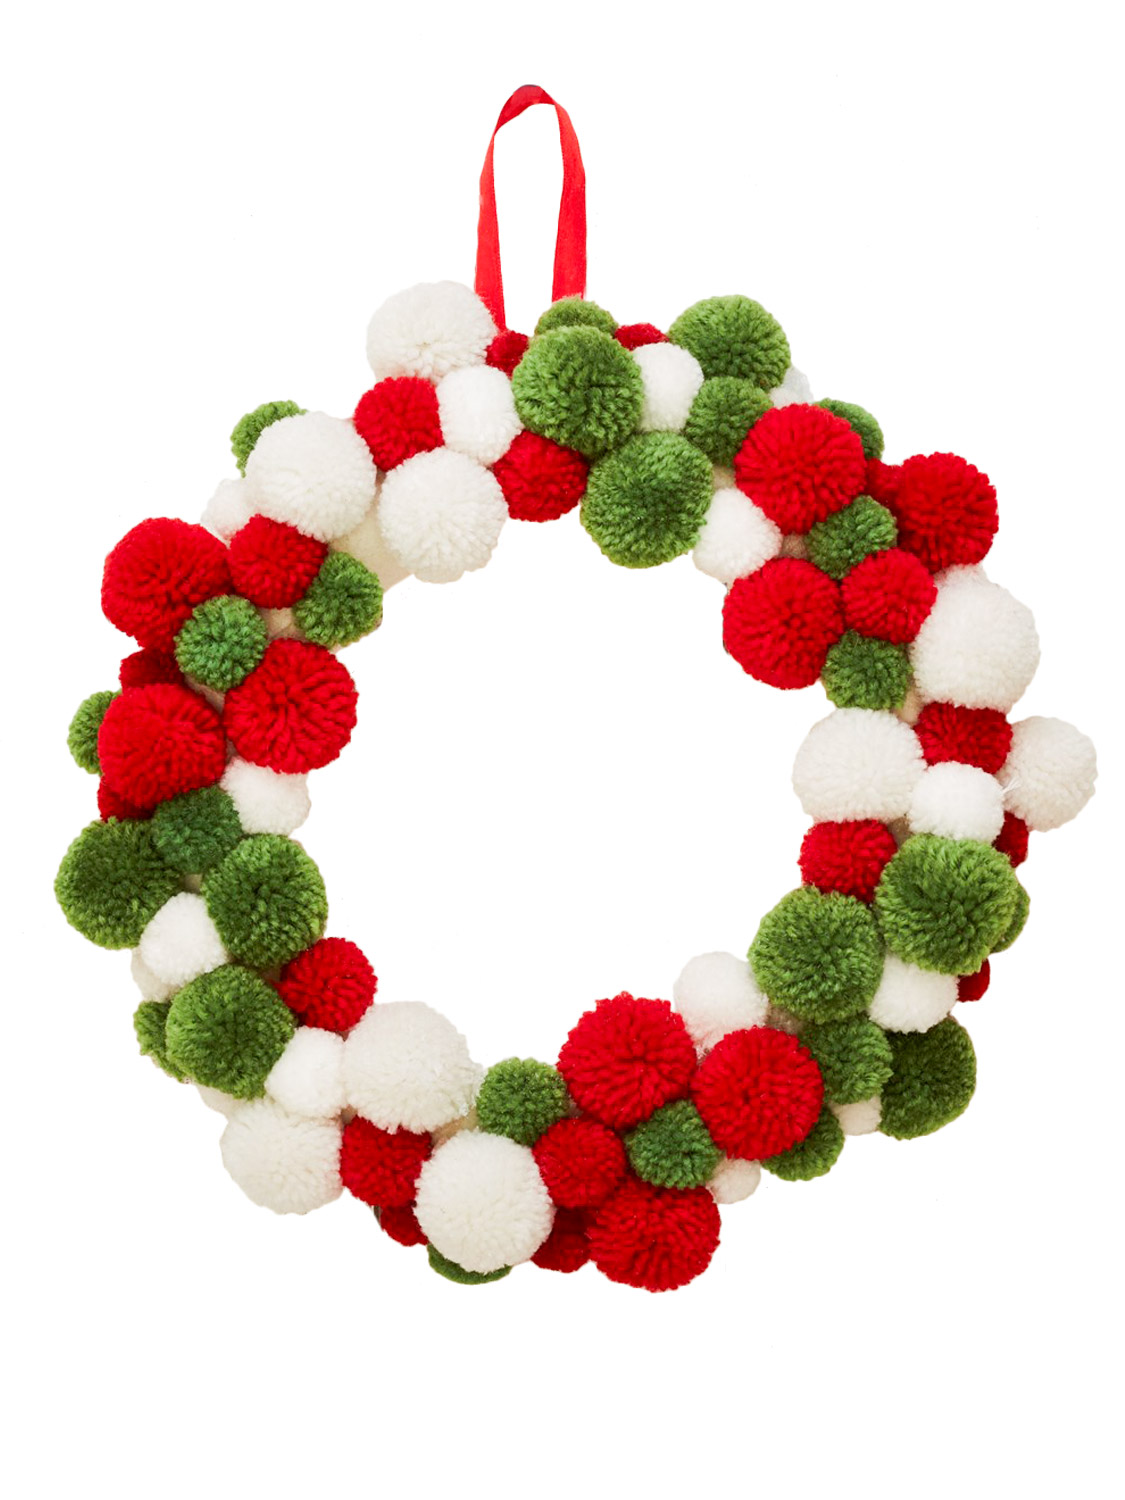 Sass Belle Red White Green Pom Pom Christmas Wreath Festive Xmas